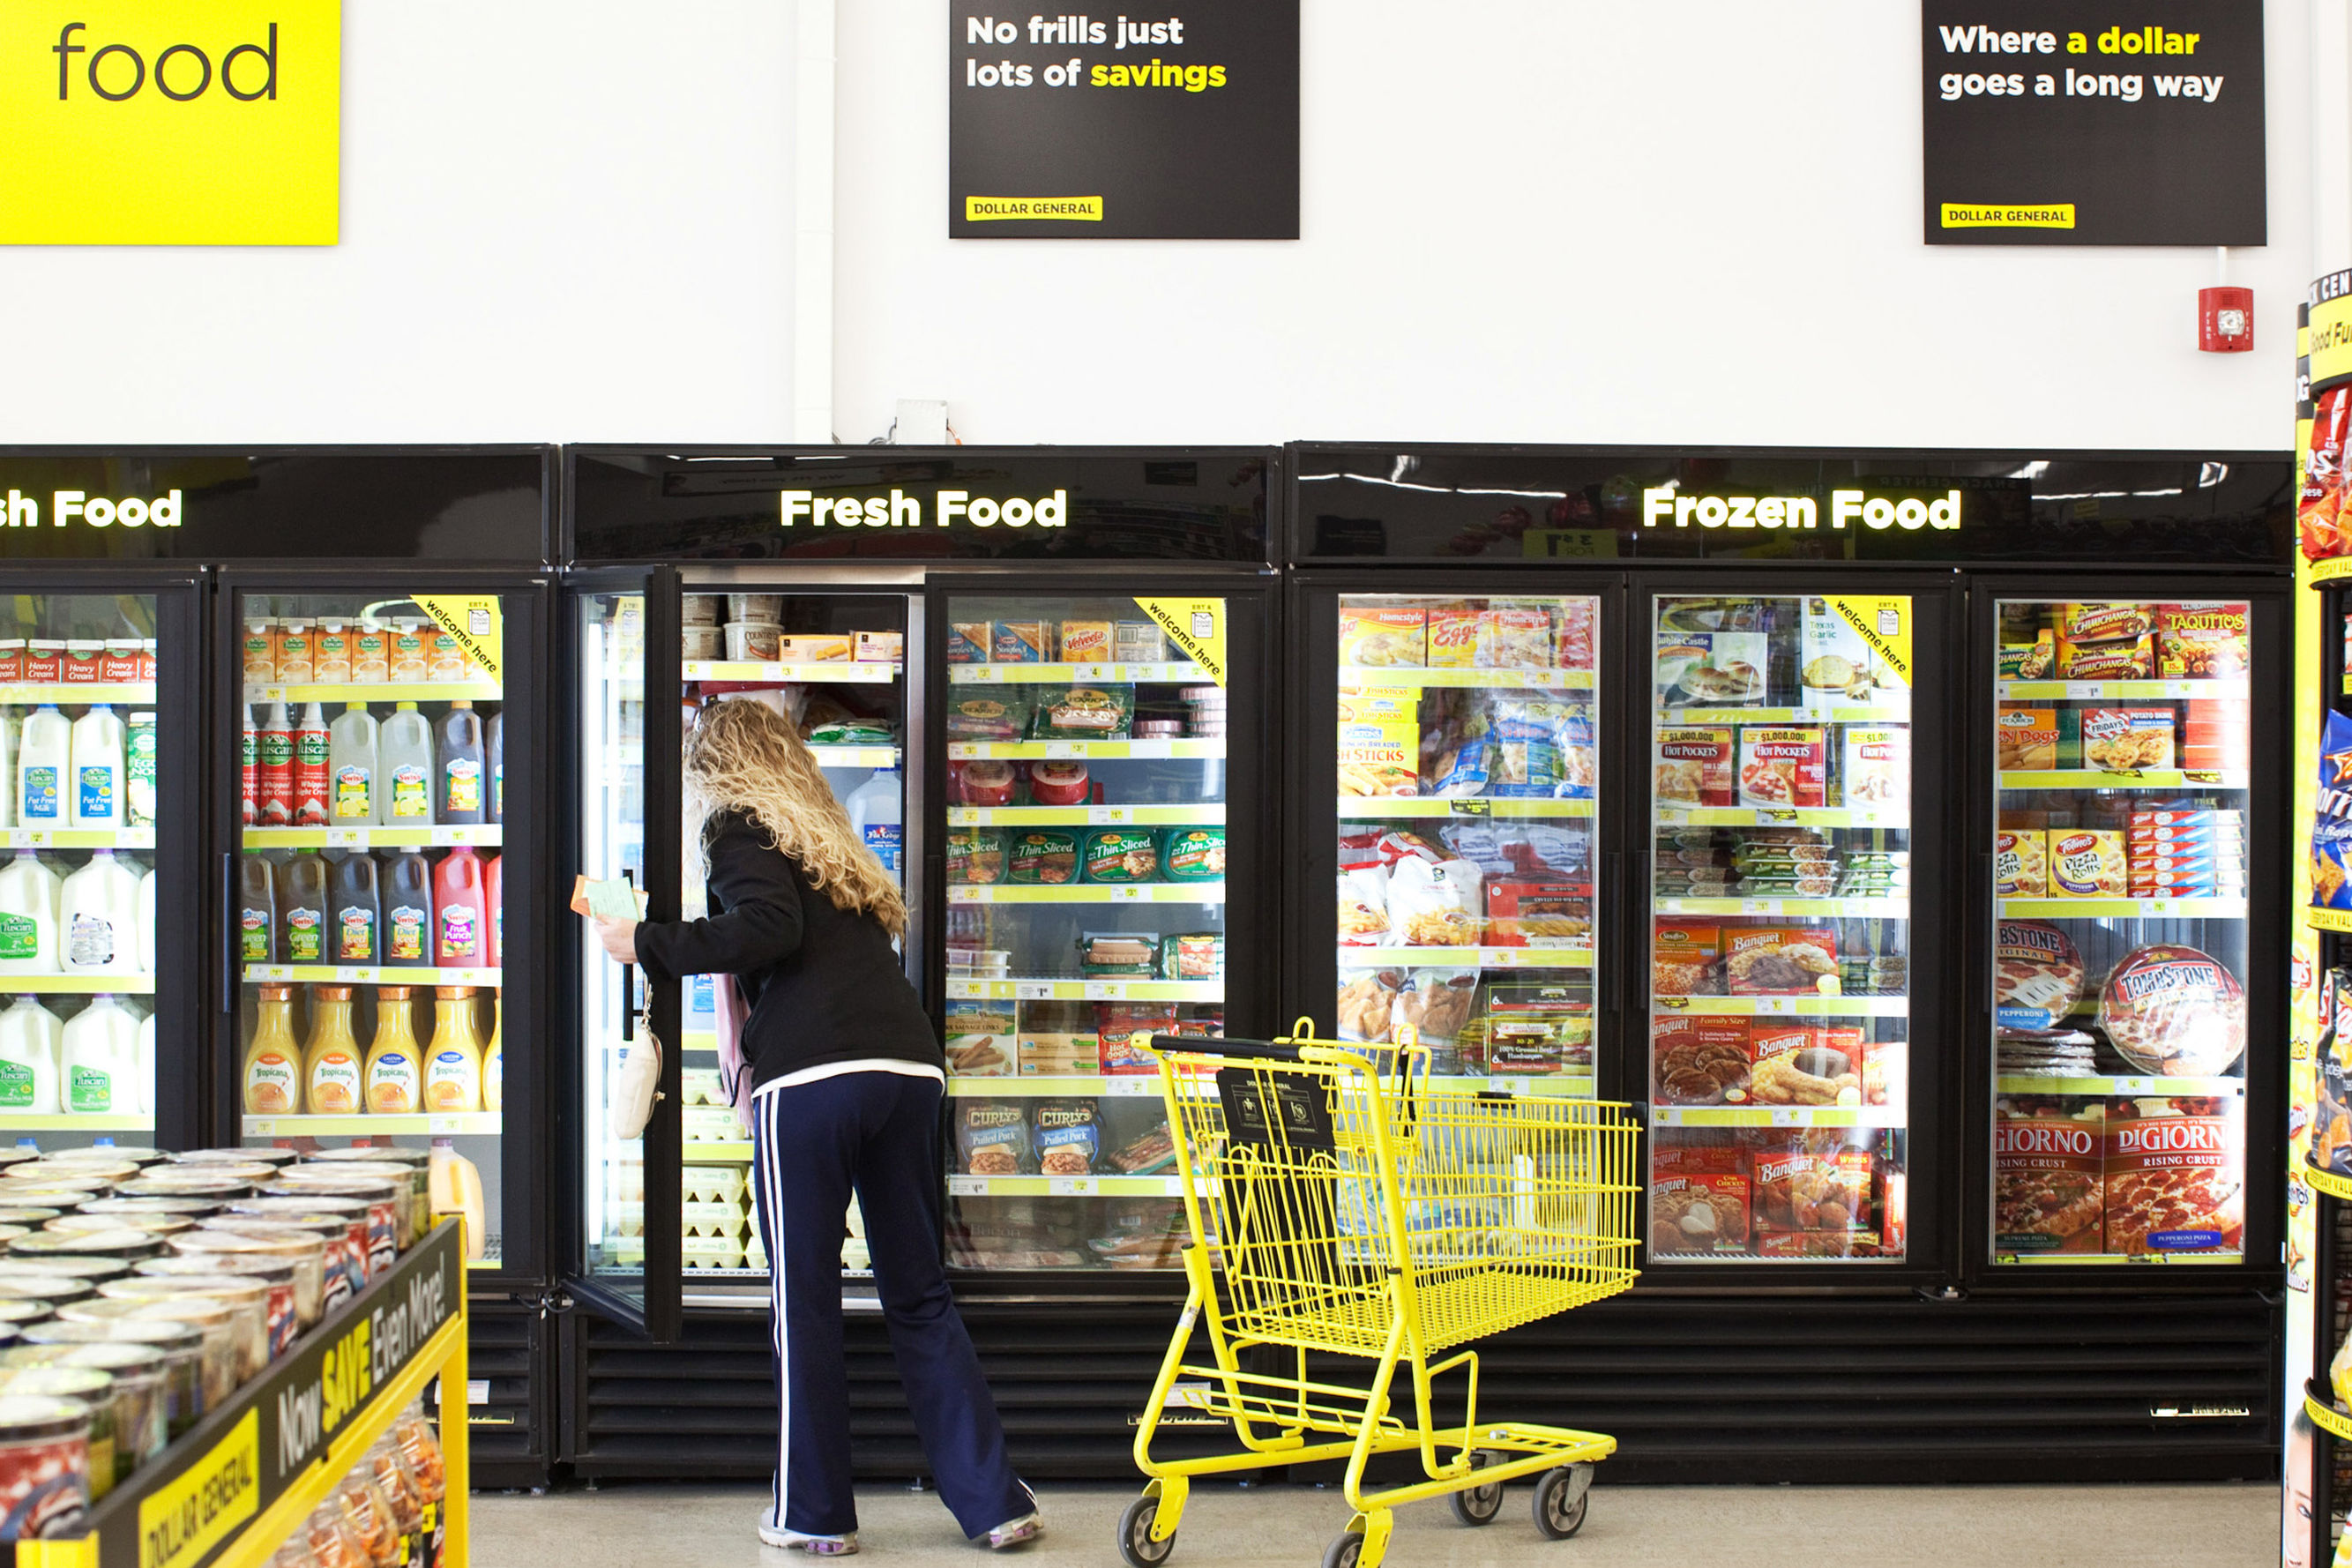 Update: Dollar General Is Adding Fresh Produce to 450 Stores